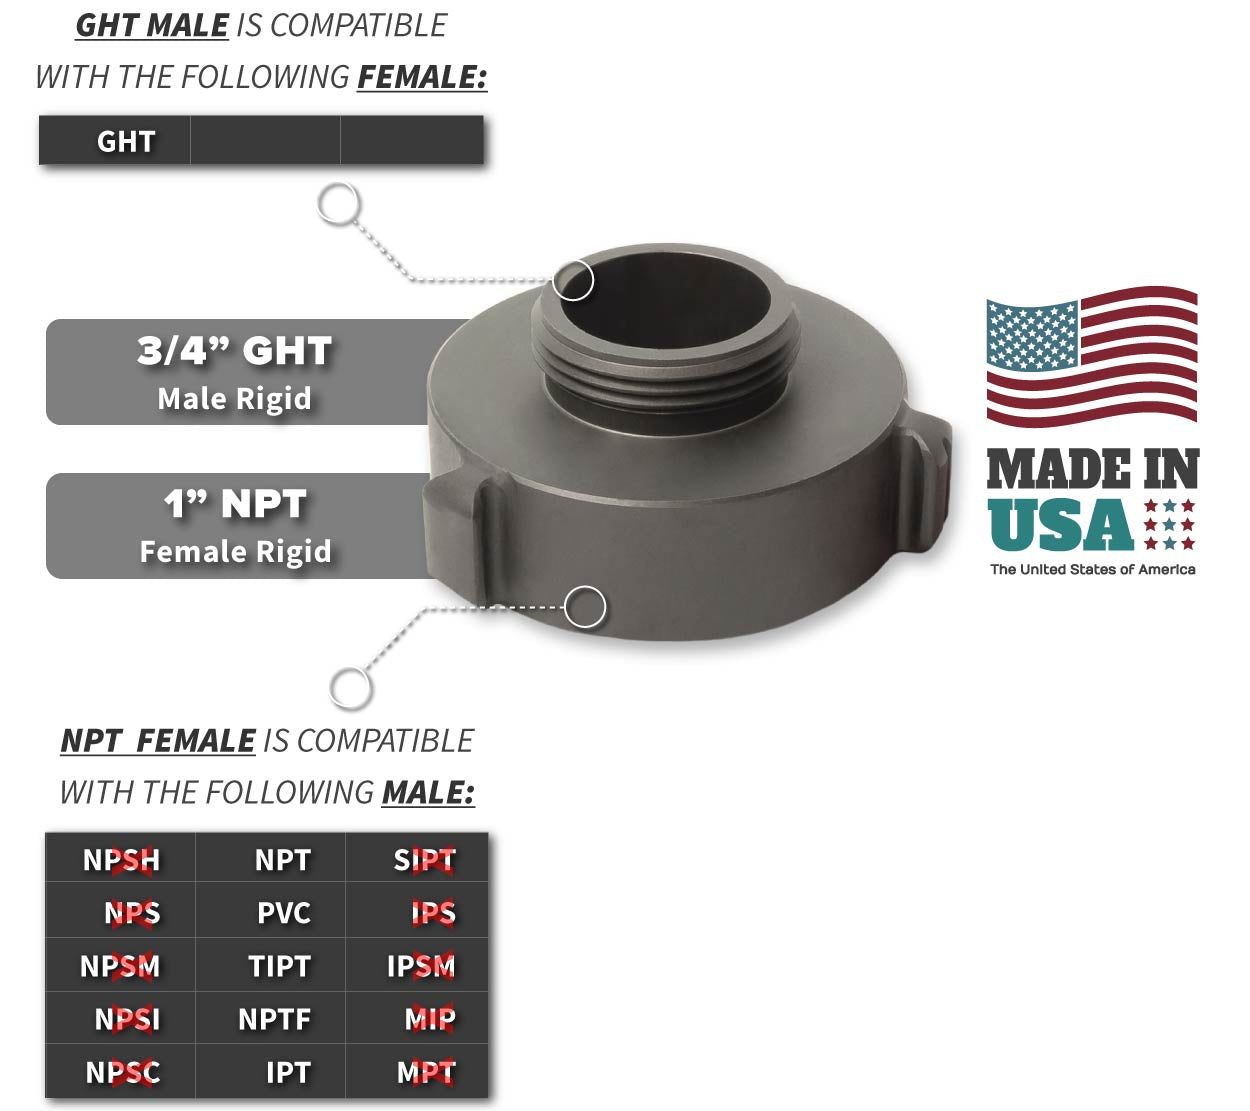 1 Inch NPT Female x 0.75 Inch GHT Male Compatibility Thread Chart